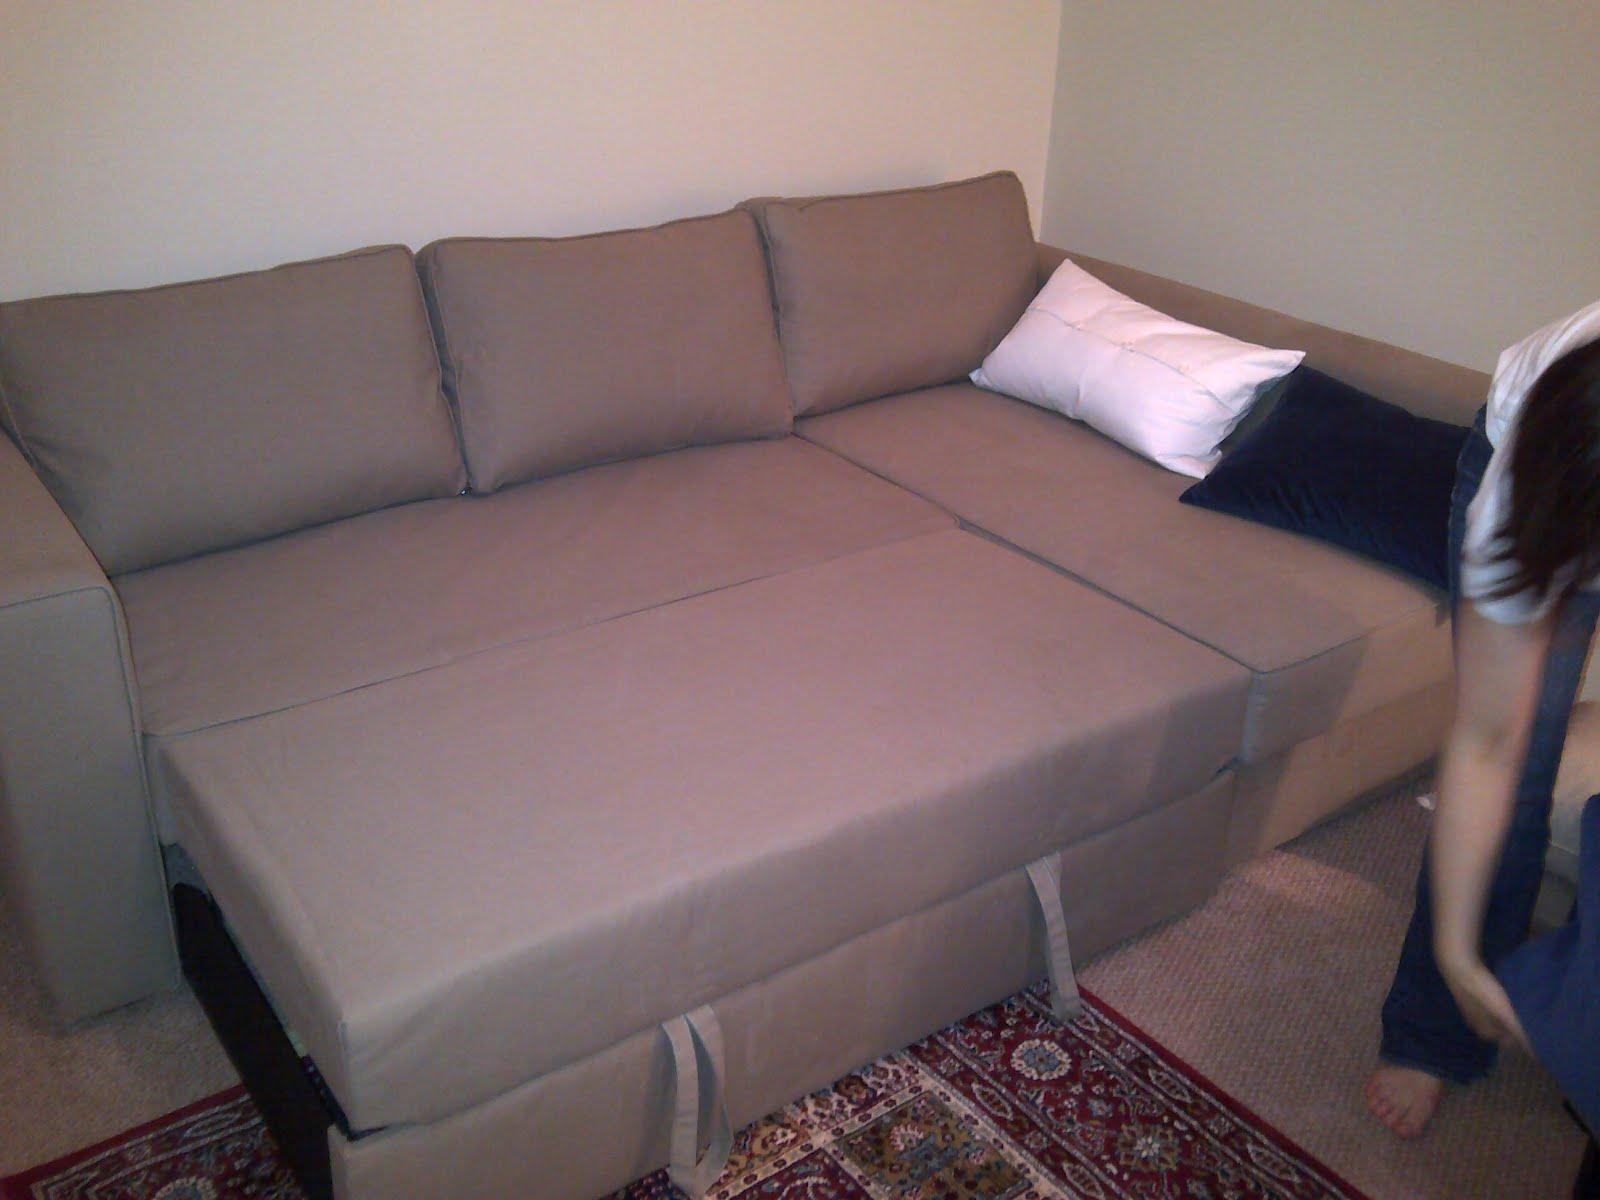 ikea couch sofa sectional manstad pottery barn slipcover knockoff 20 best ideas bed